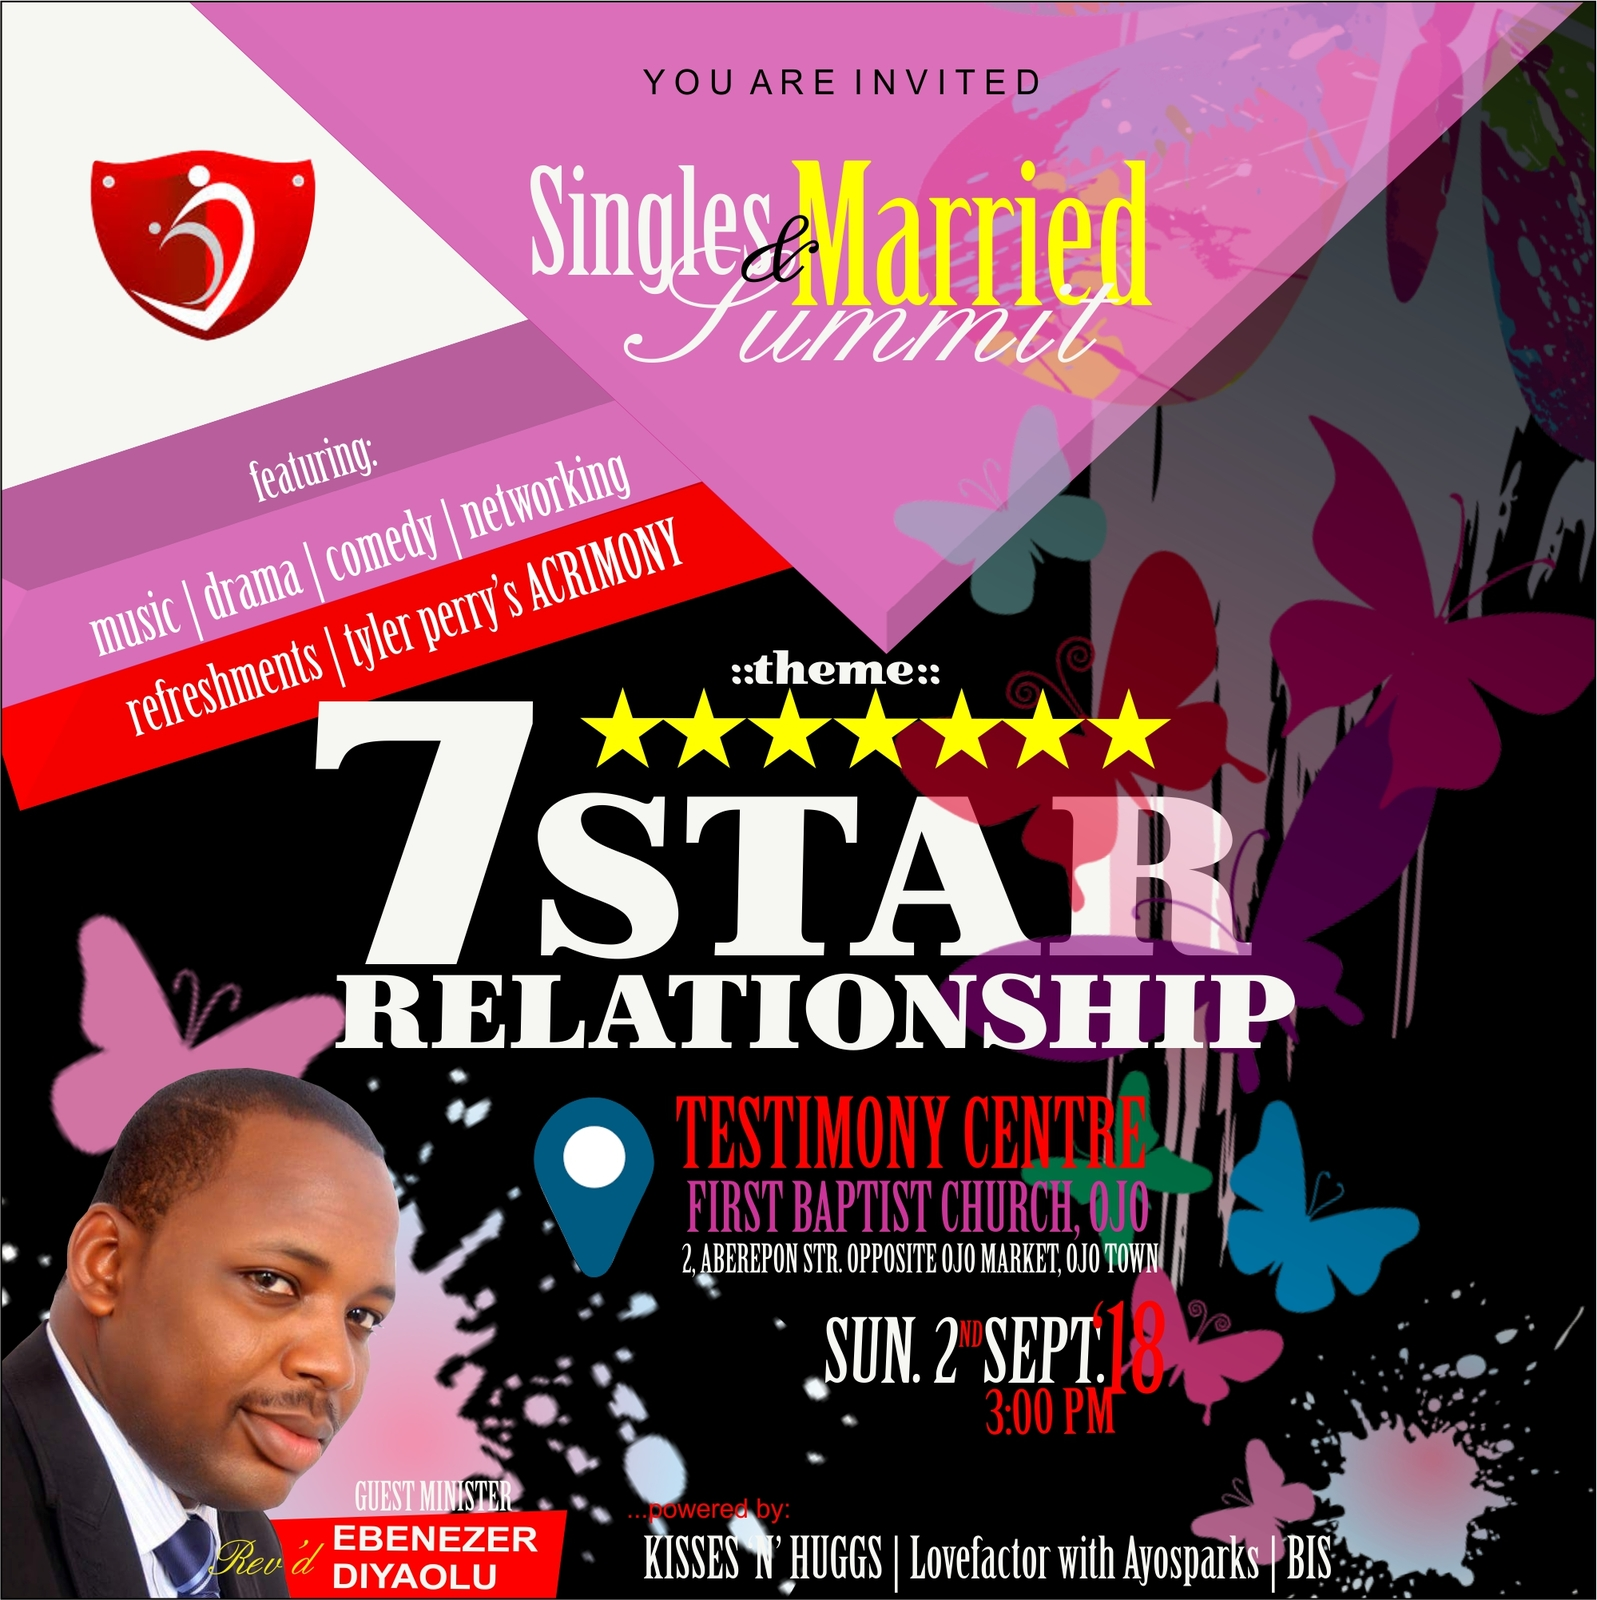 SINGLES AND MARRIED SUMMIT 2018